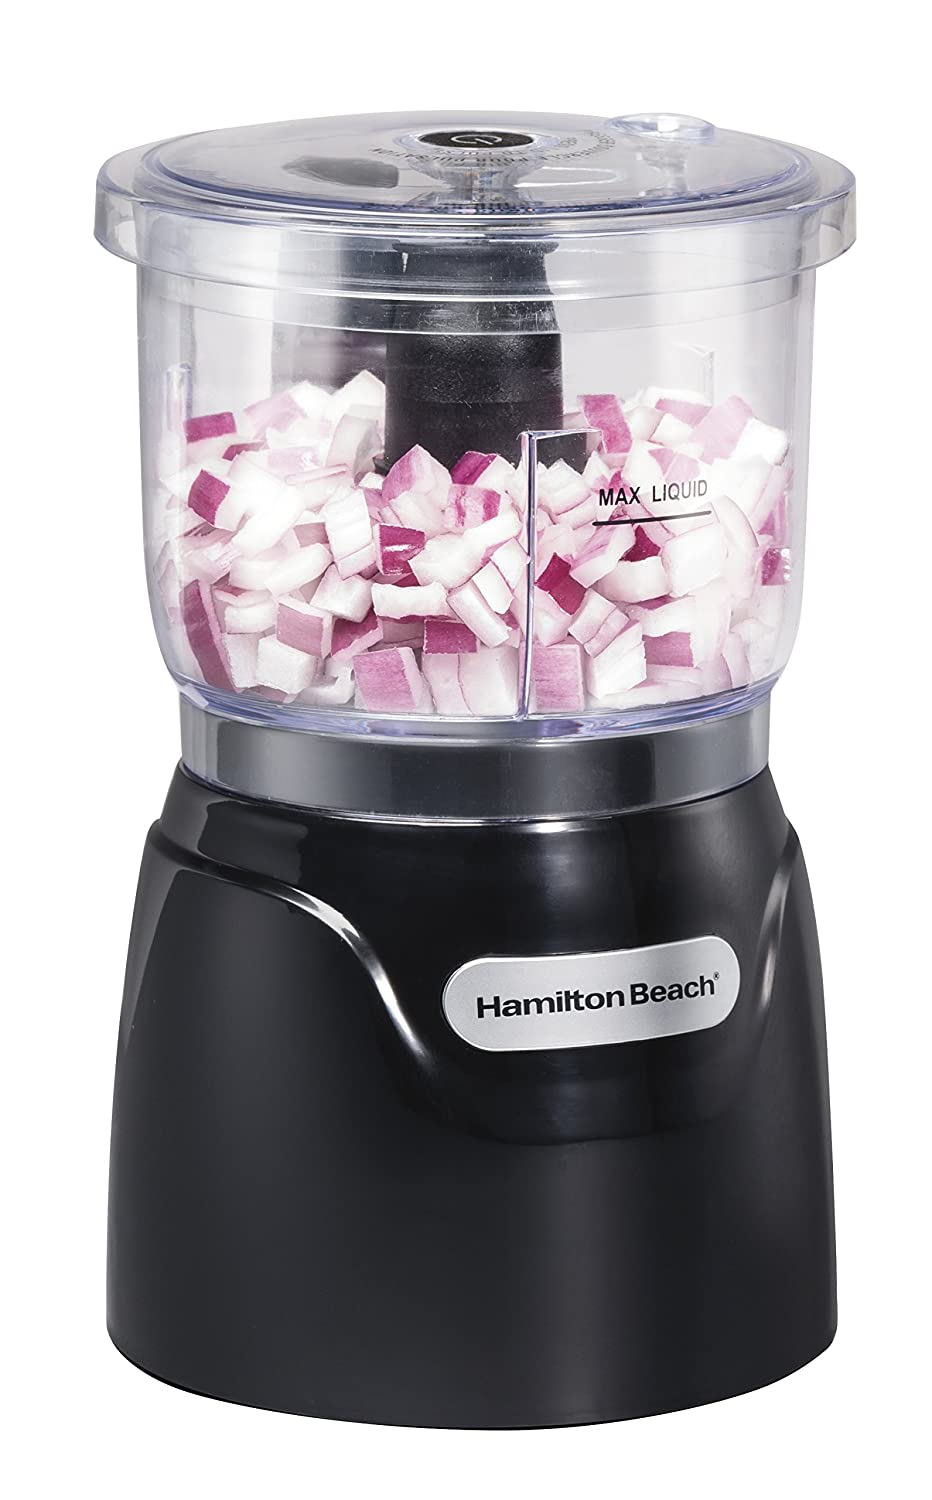 Hamilton Beach Mini 3-Cup Onion Chopper